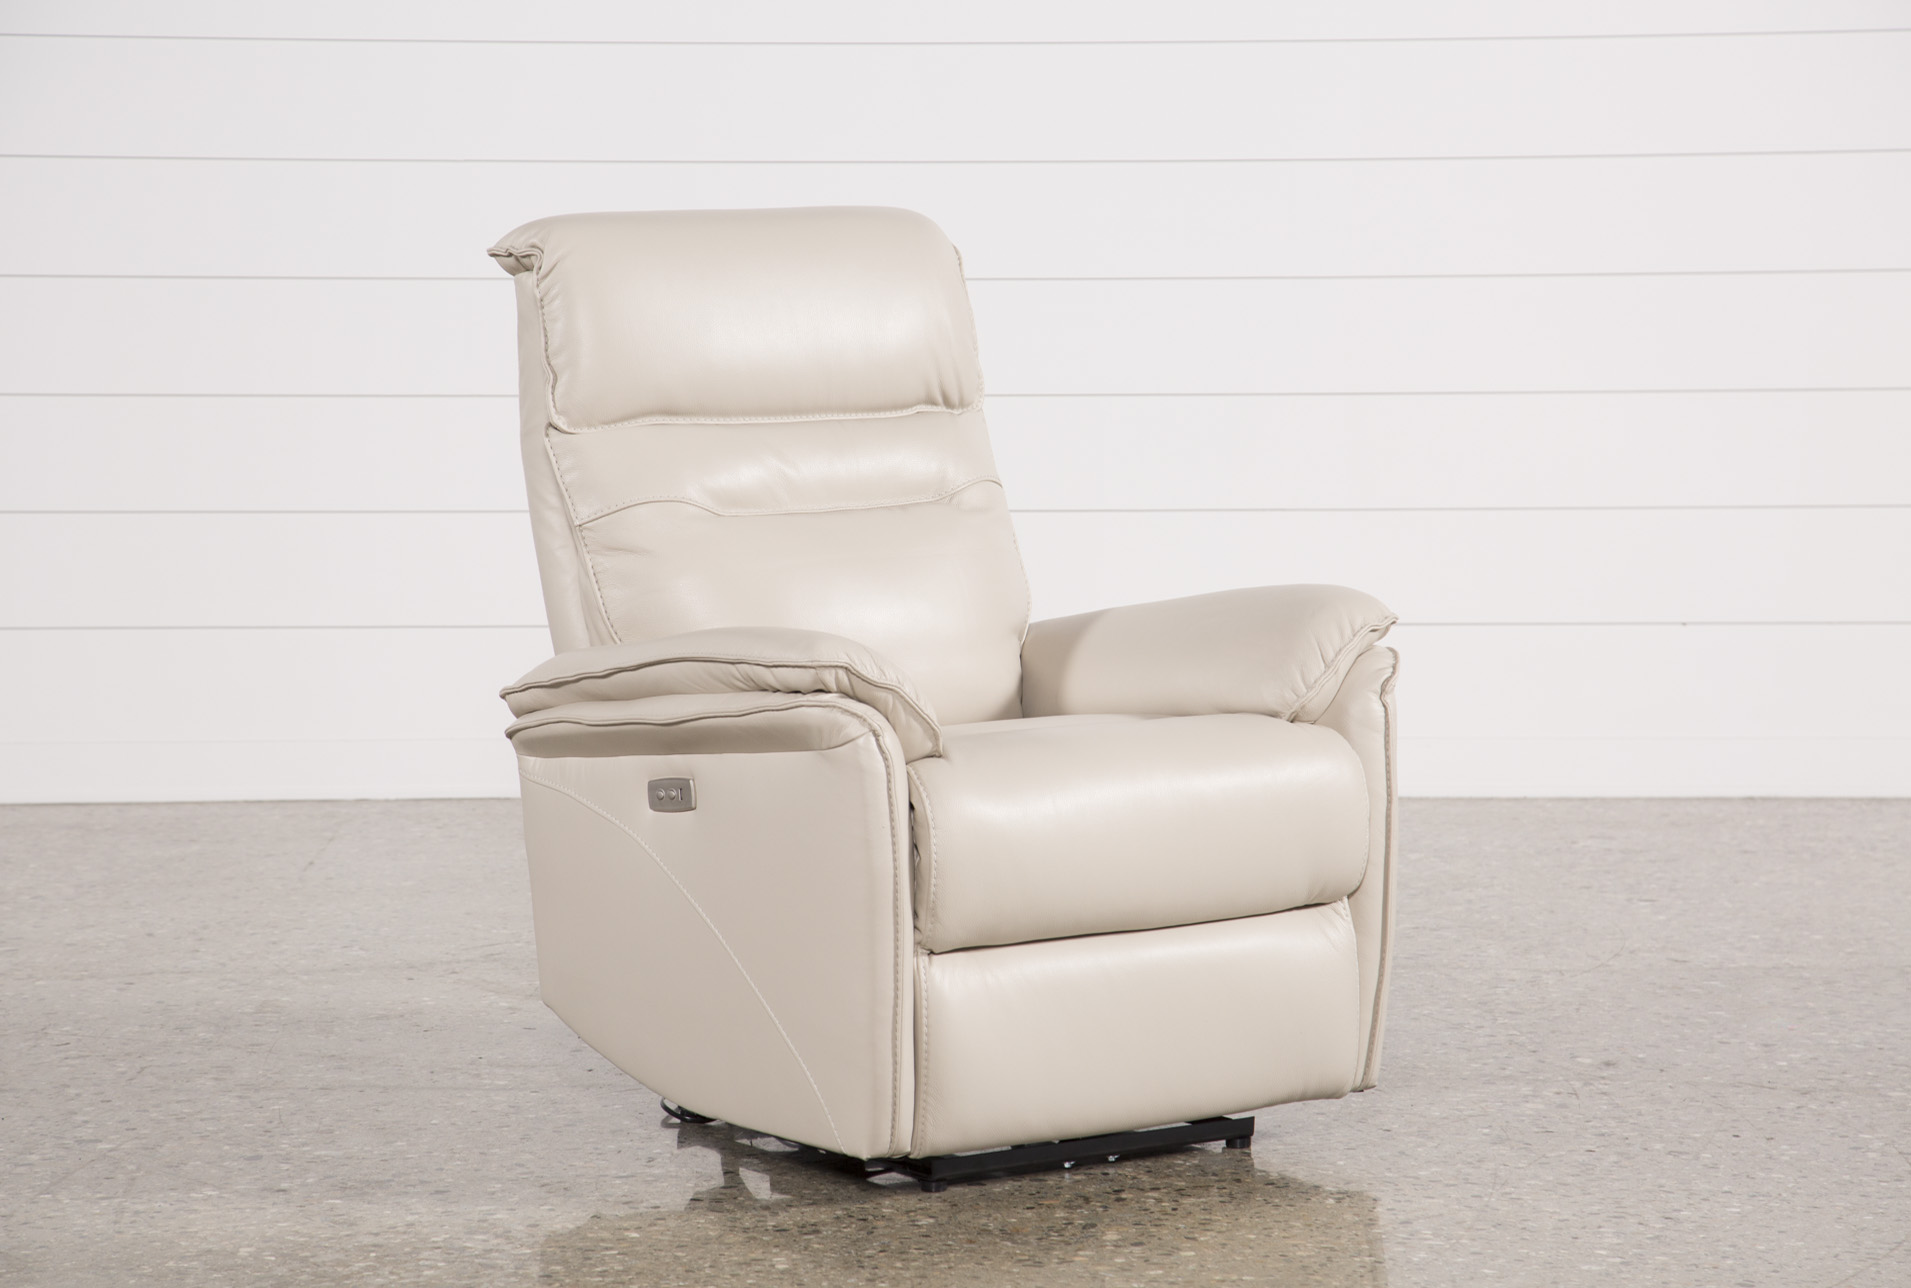 Laird Cream Leather Power Wallaway Recliner W/ Adjustable Headrest (Qty: 1)  Has Been Successfully Added To Your Cart.